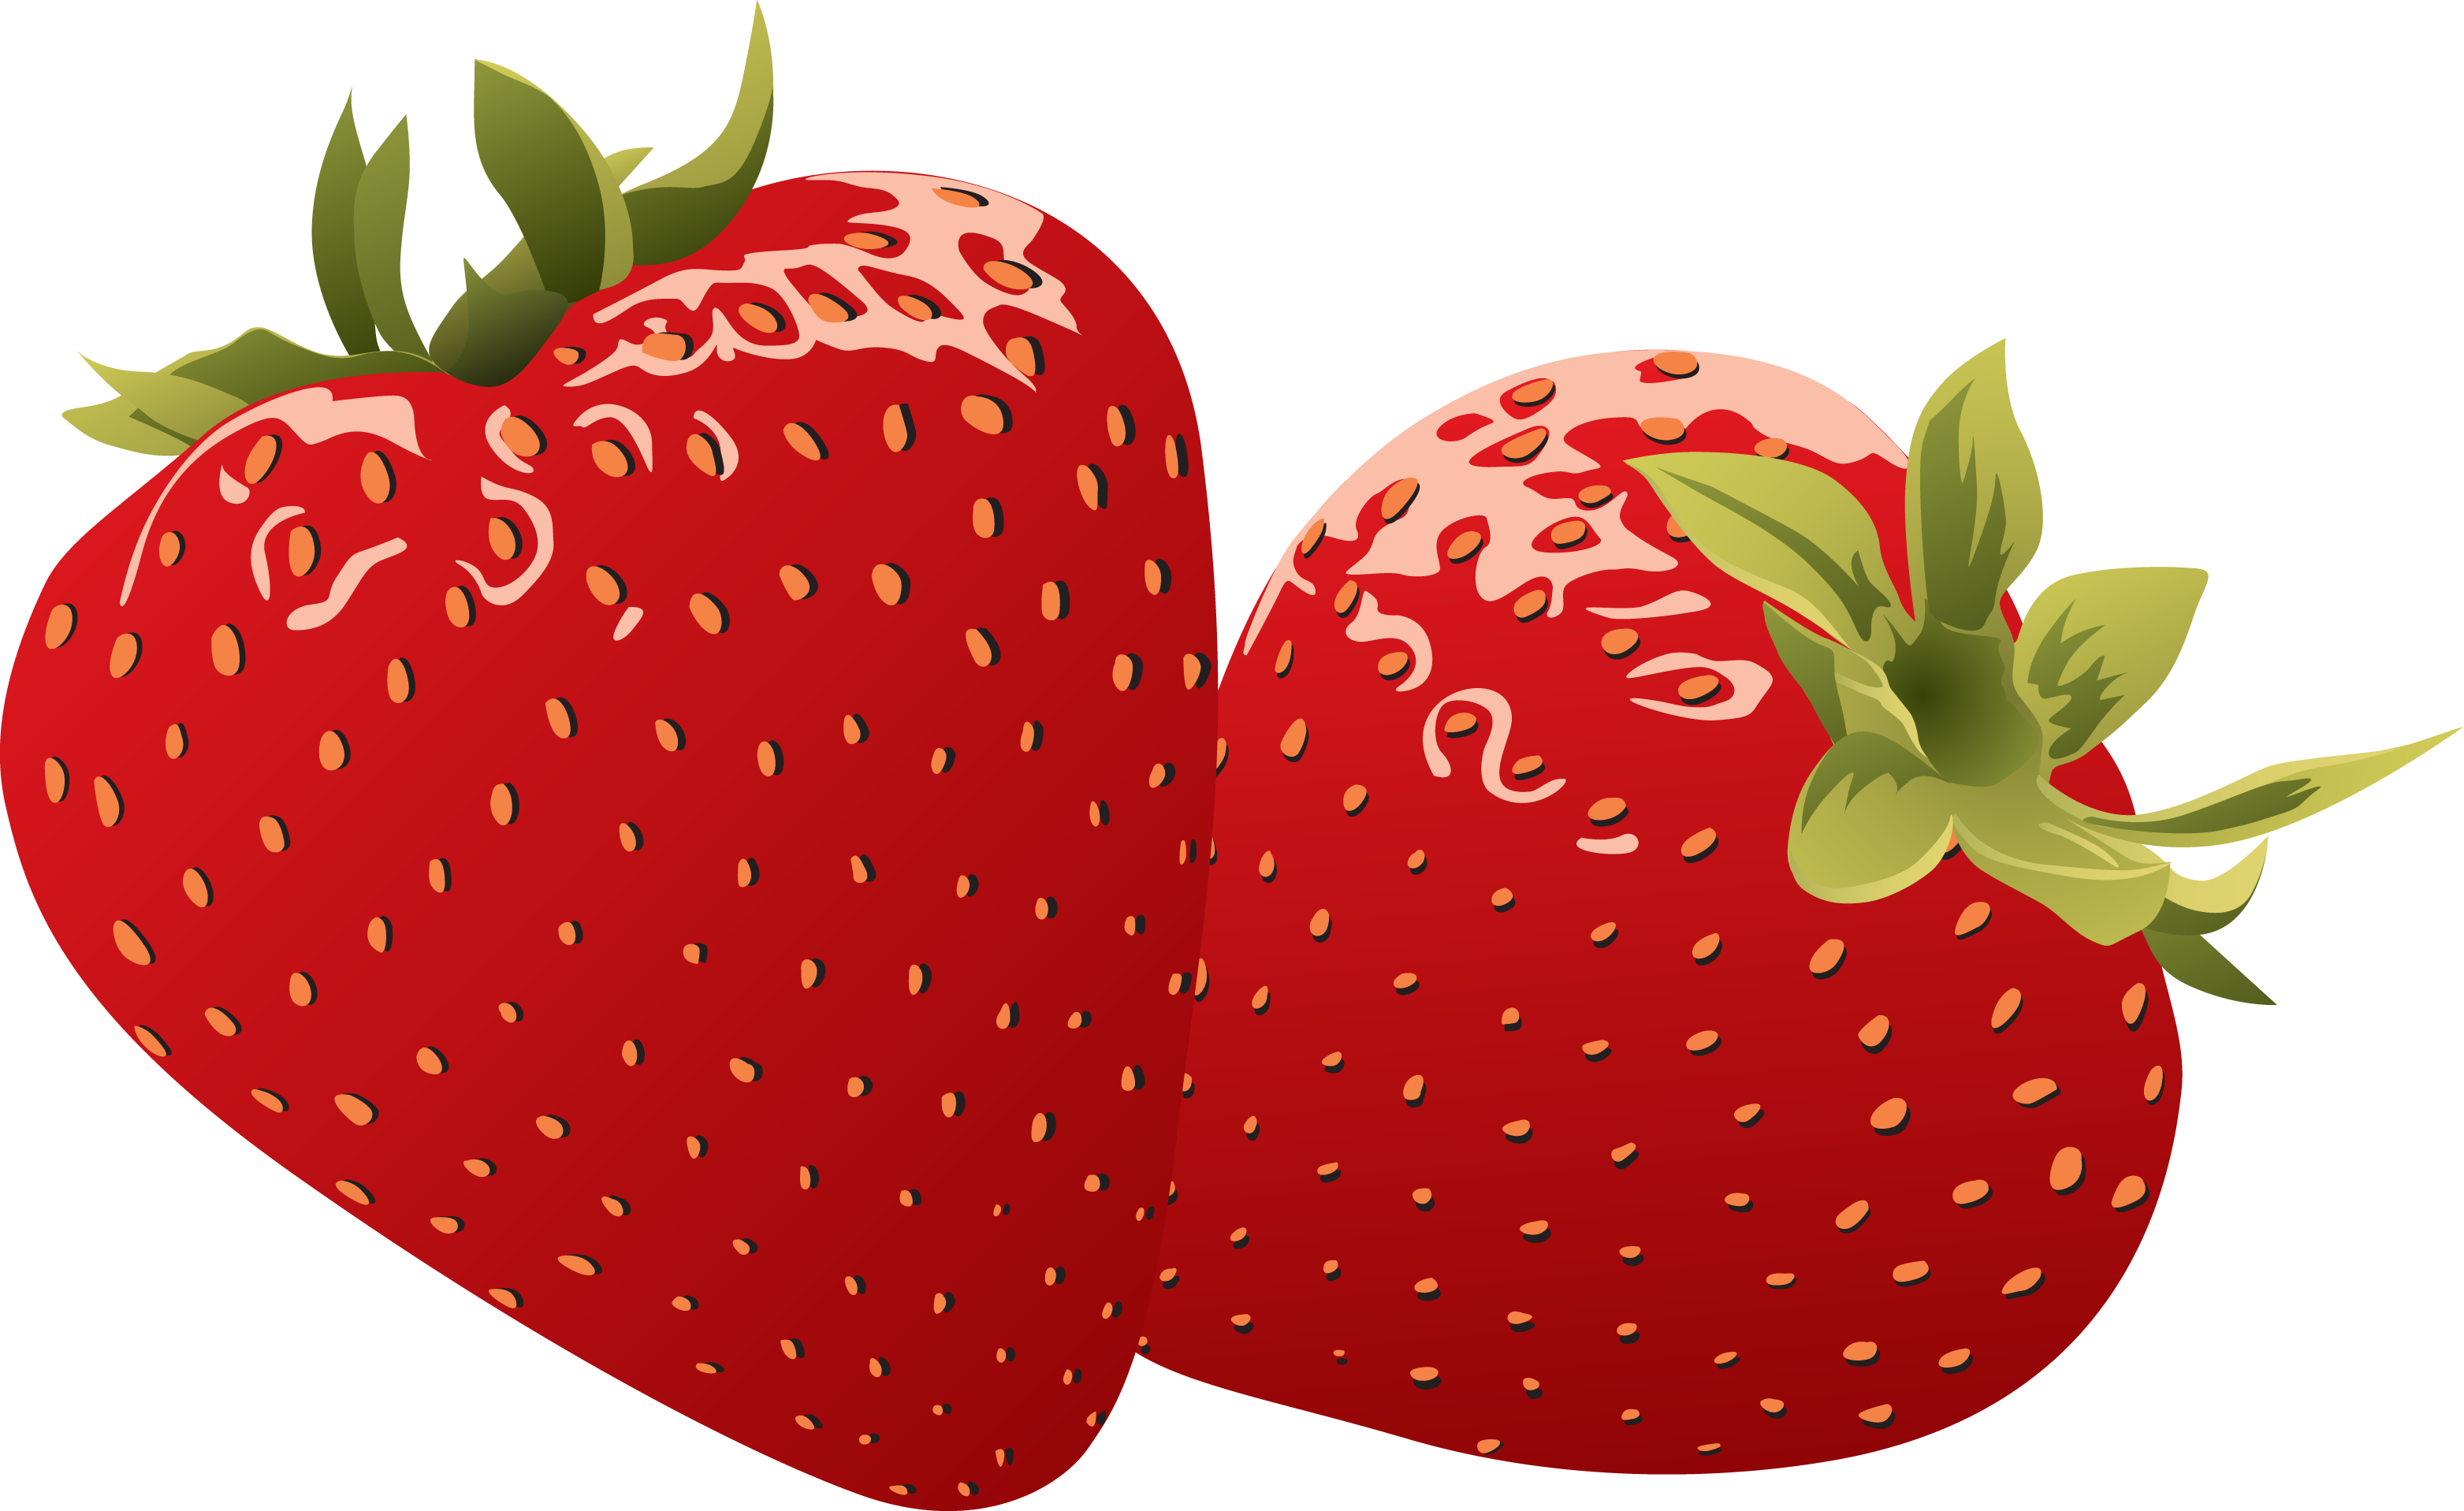 Strawberry Juice Png image #22930